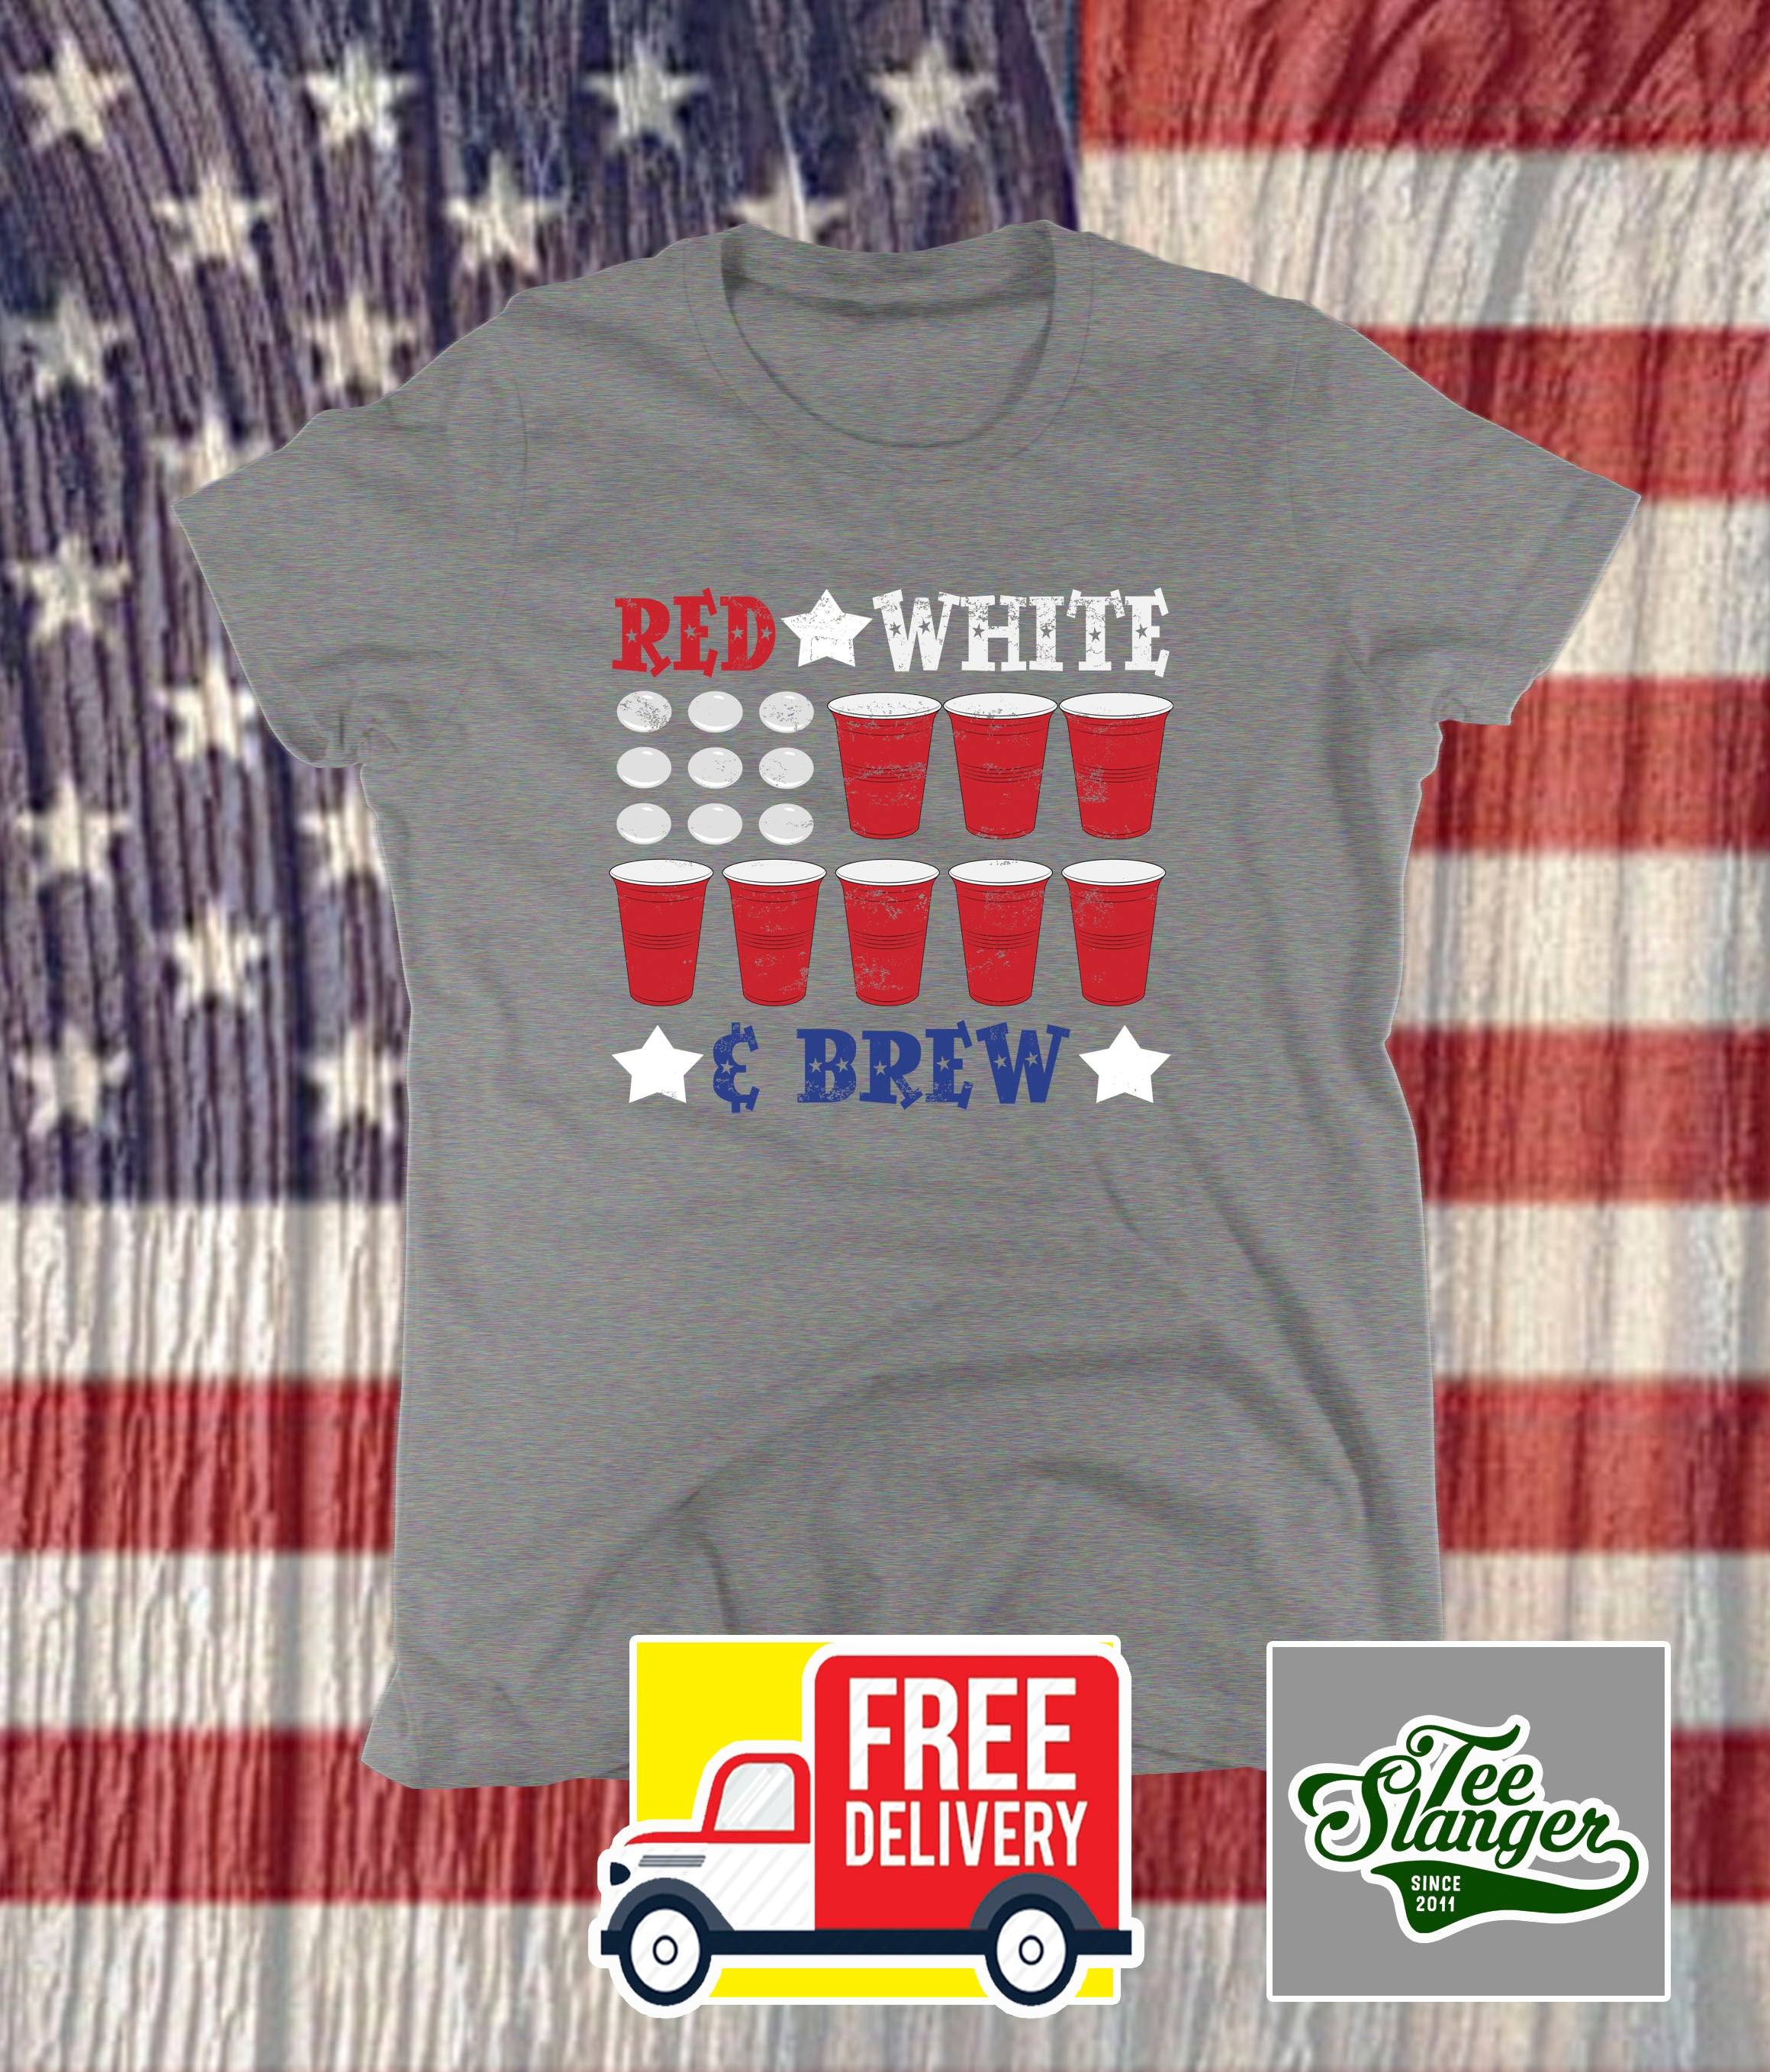 RED WHITE AND BREW LADIES T-SHIRT